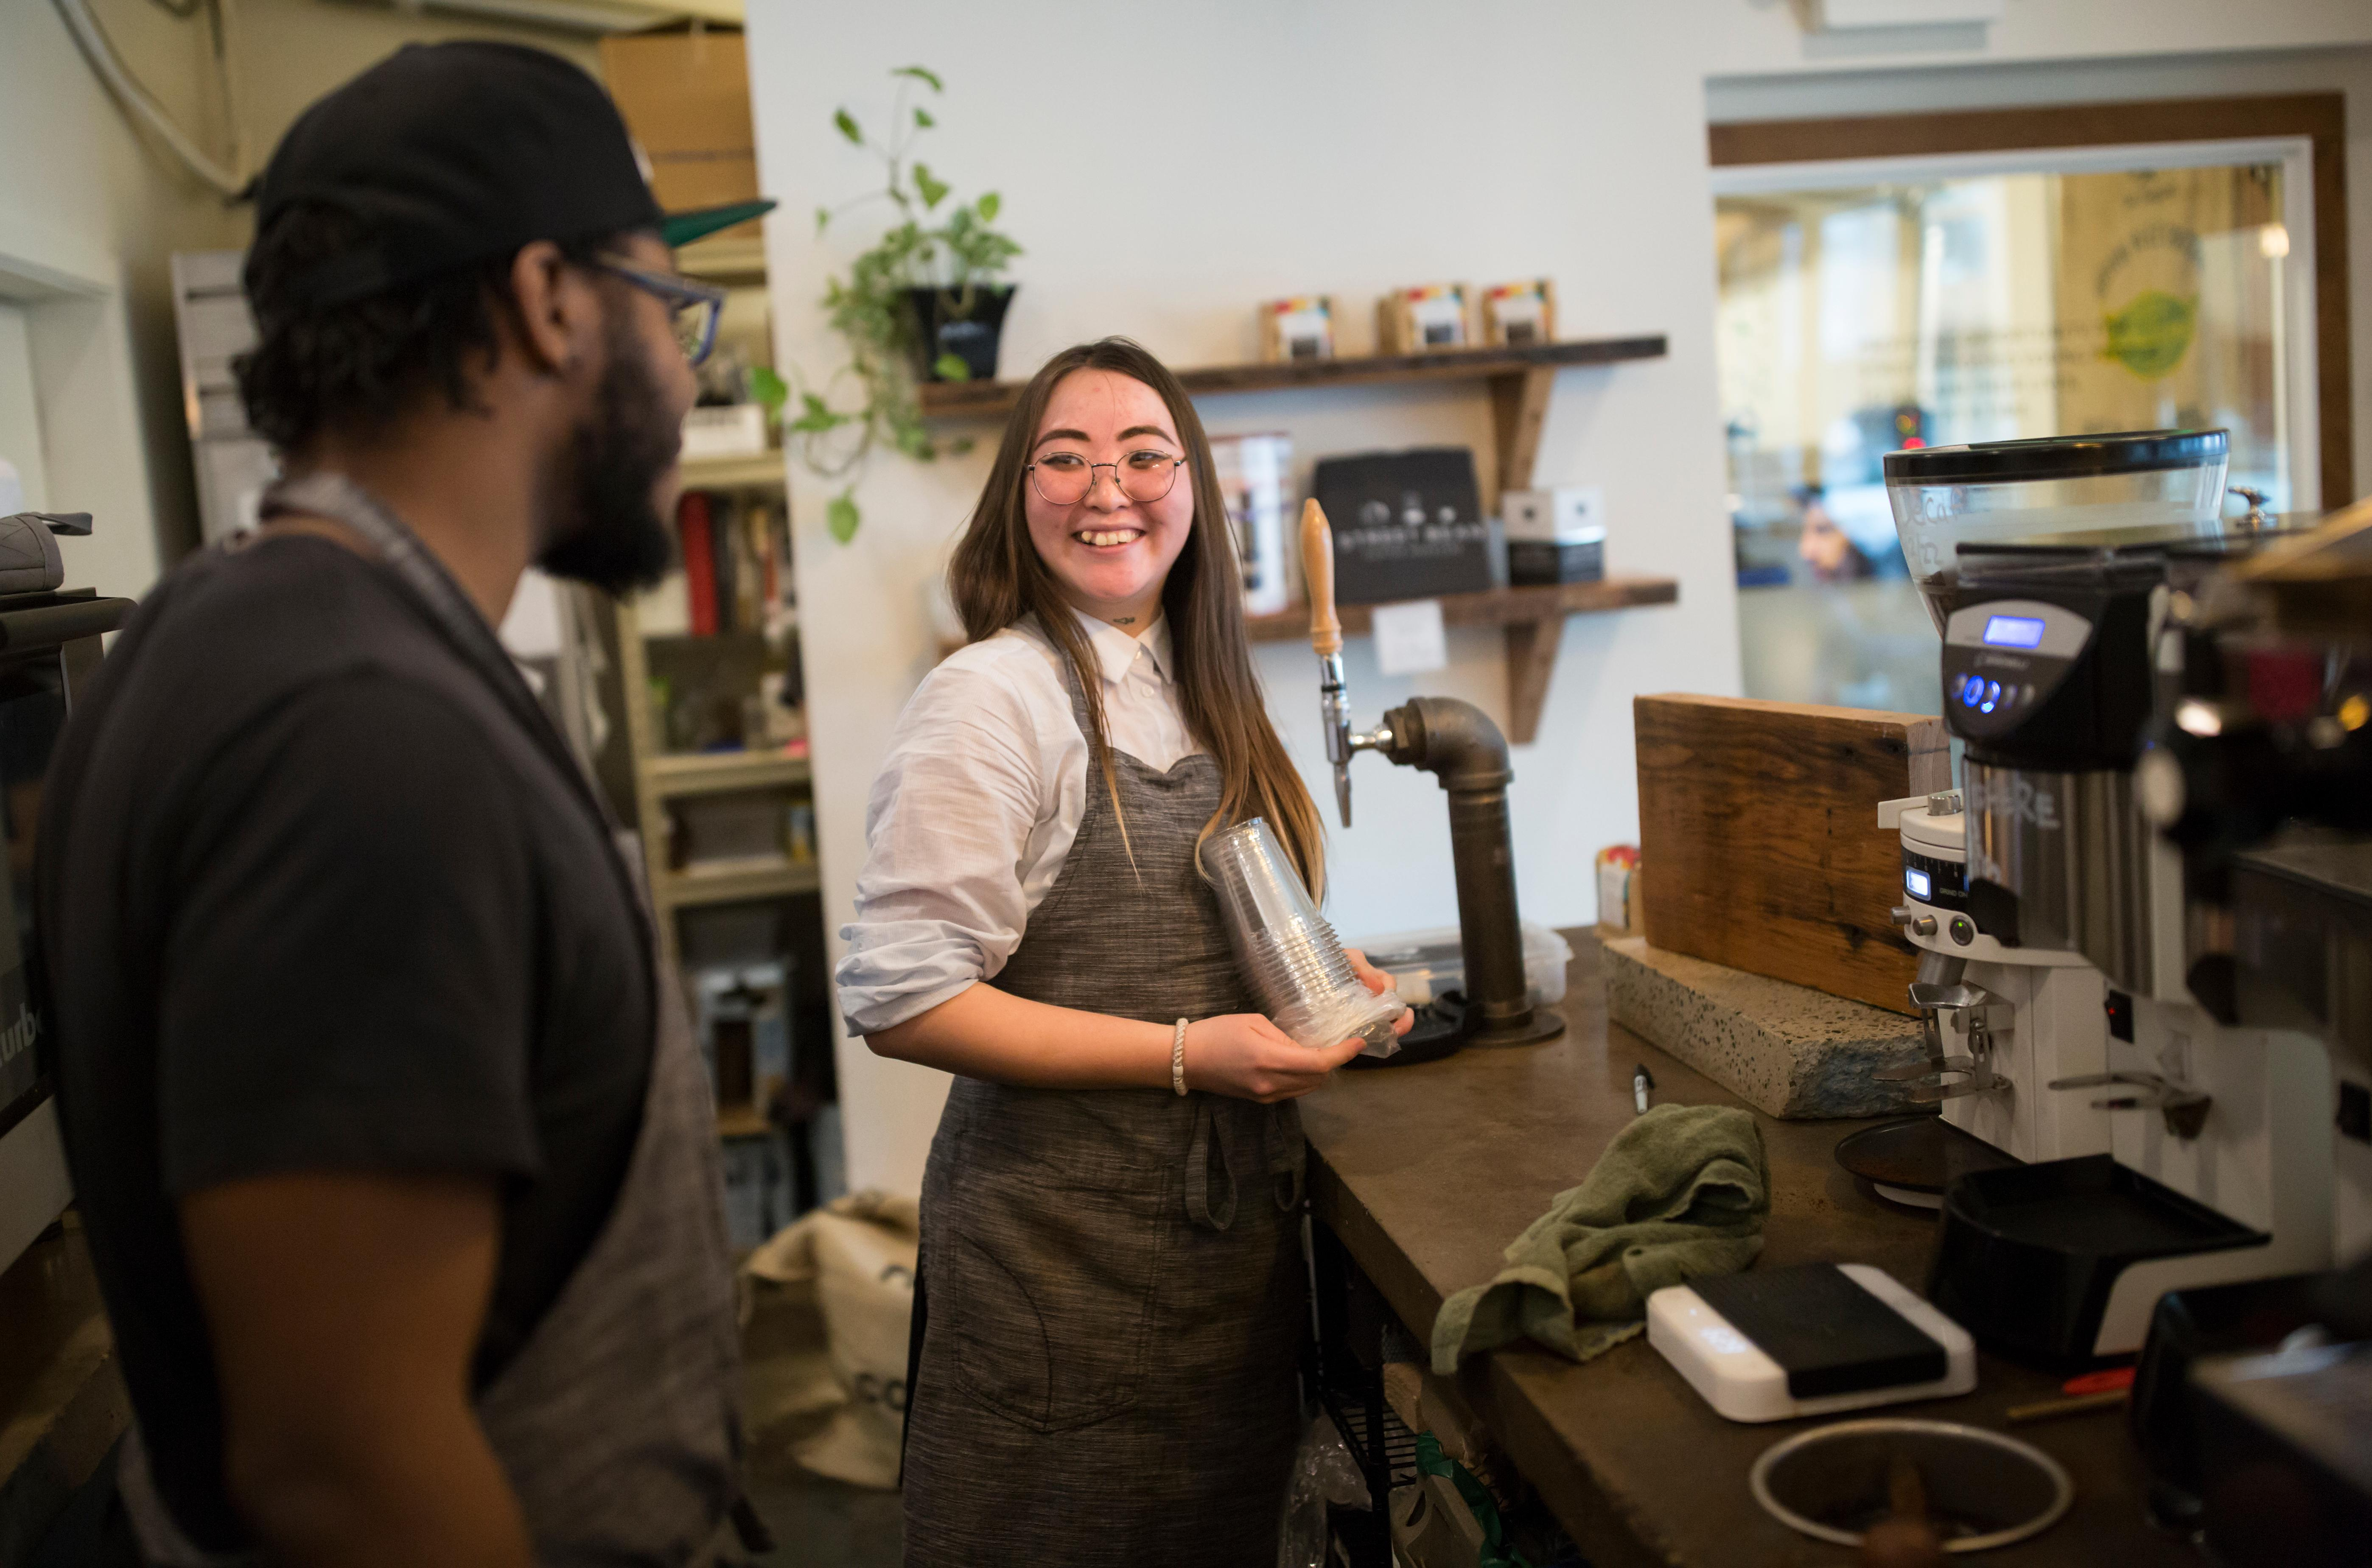 Ynga Chernogradskaia laughs with Shift Supervisor Anthony Harris at Street Bean Coffee Roasters, a local coffee shop and non-profit that's dedicated to providing work opportunities for street-involved youth. (Sy Bean / Seattle Refined)